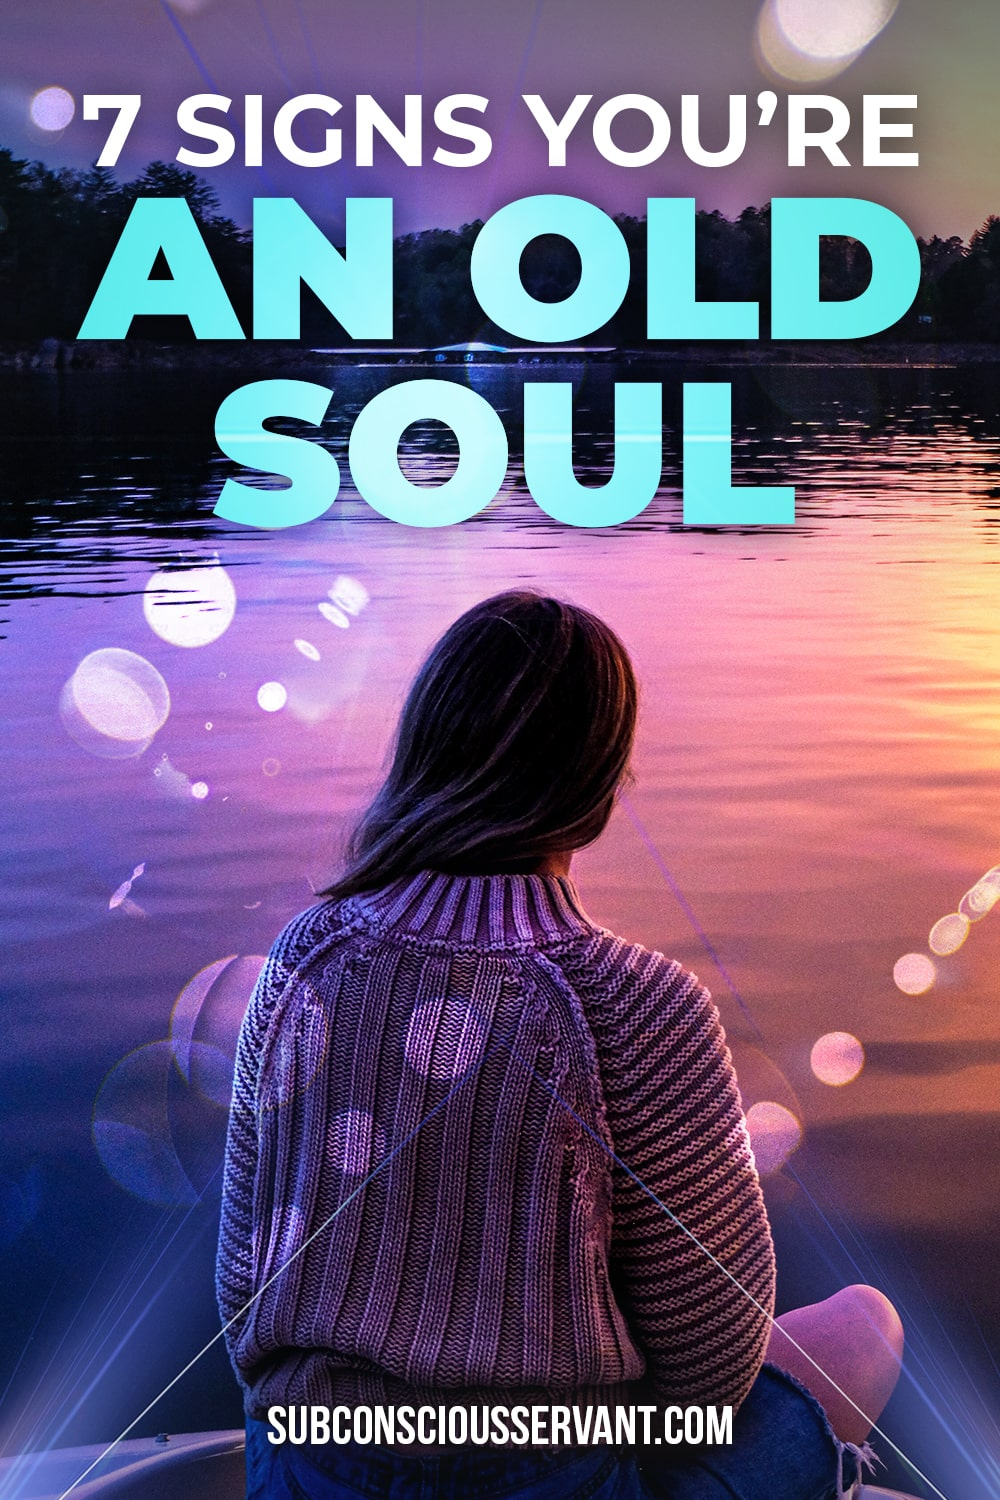 7 Signs You're An Old Soul